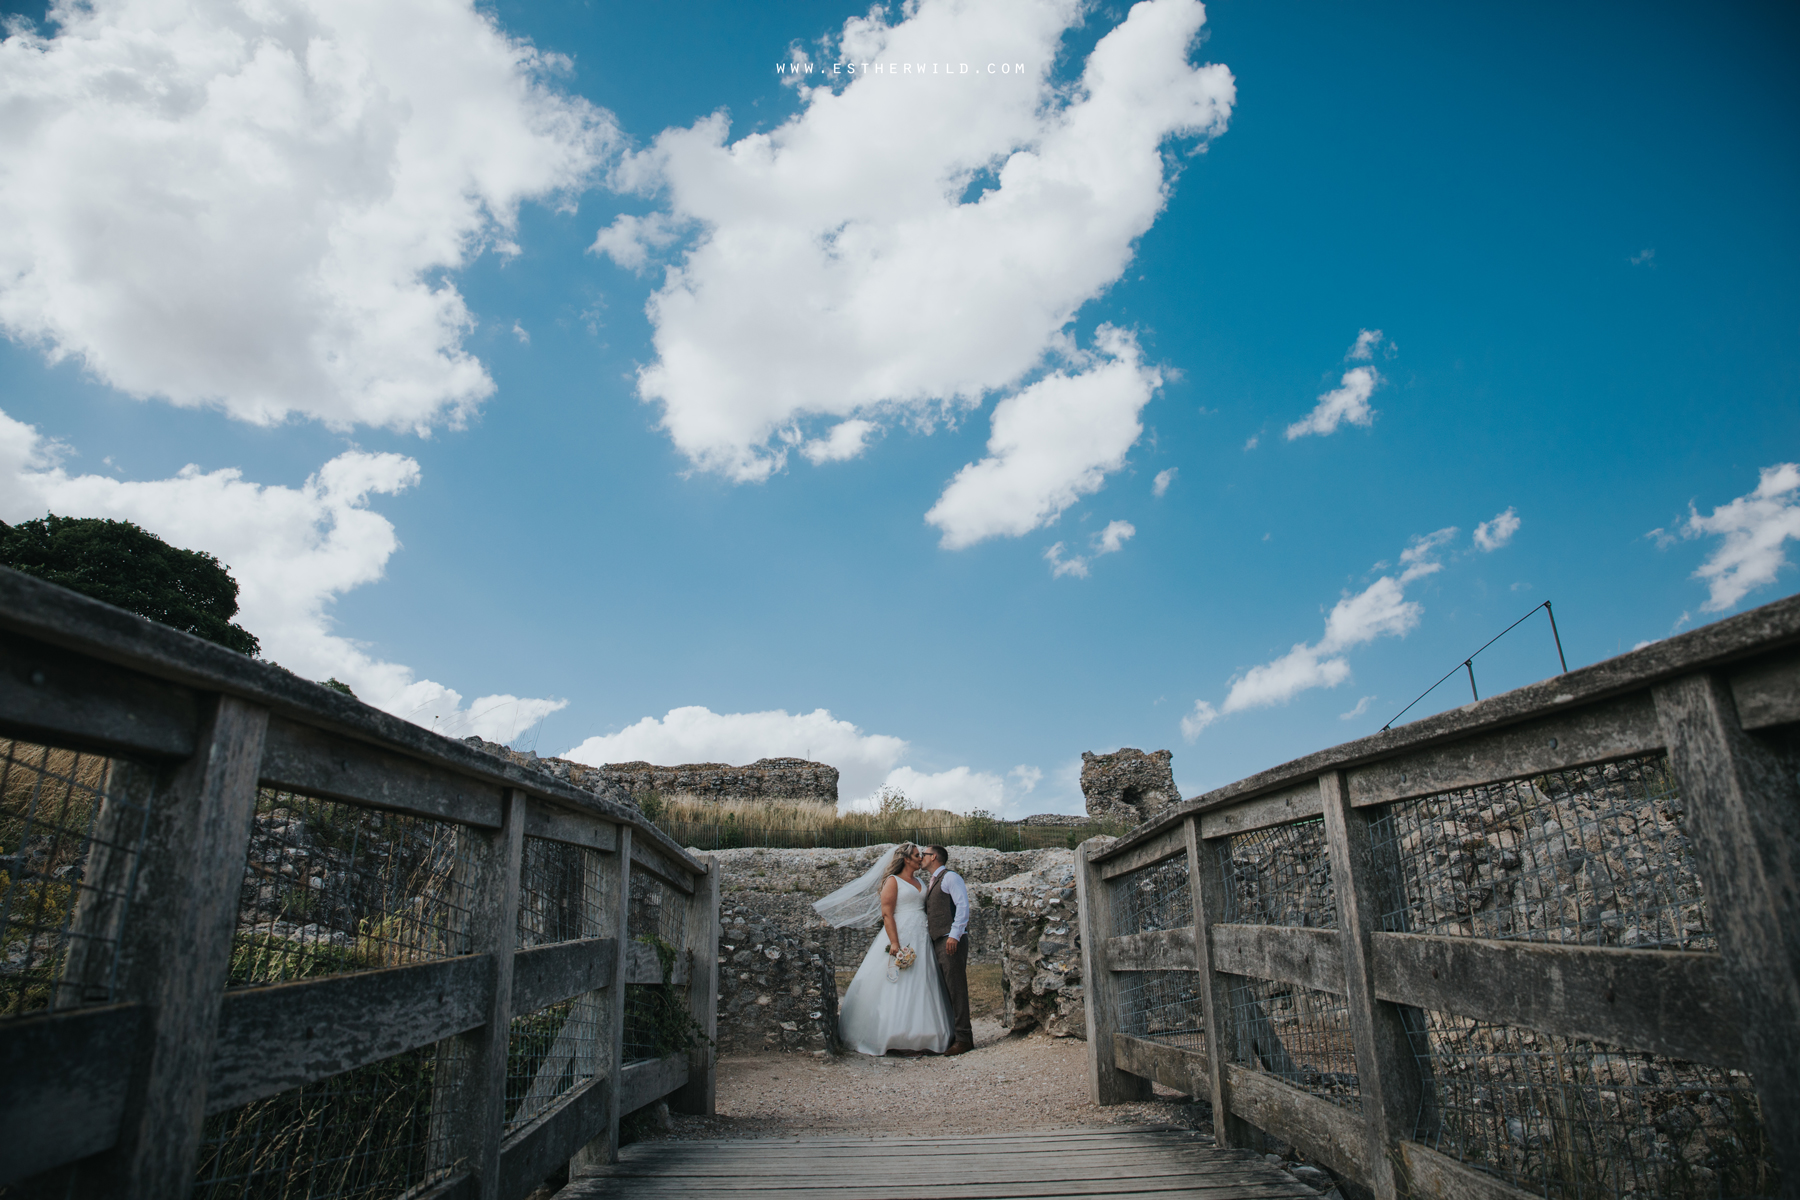 Swaffham_Wedding_Castle_Acre_Norfolk_Esther_Wild_Photographer_Wedding_Photography_3R8A1389.jpg